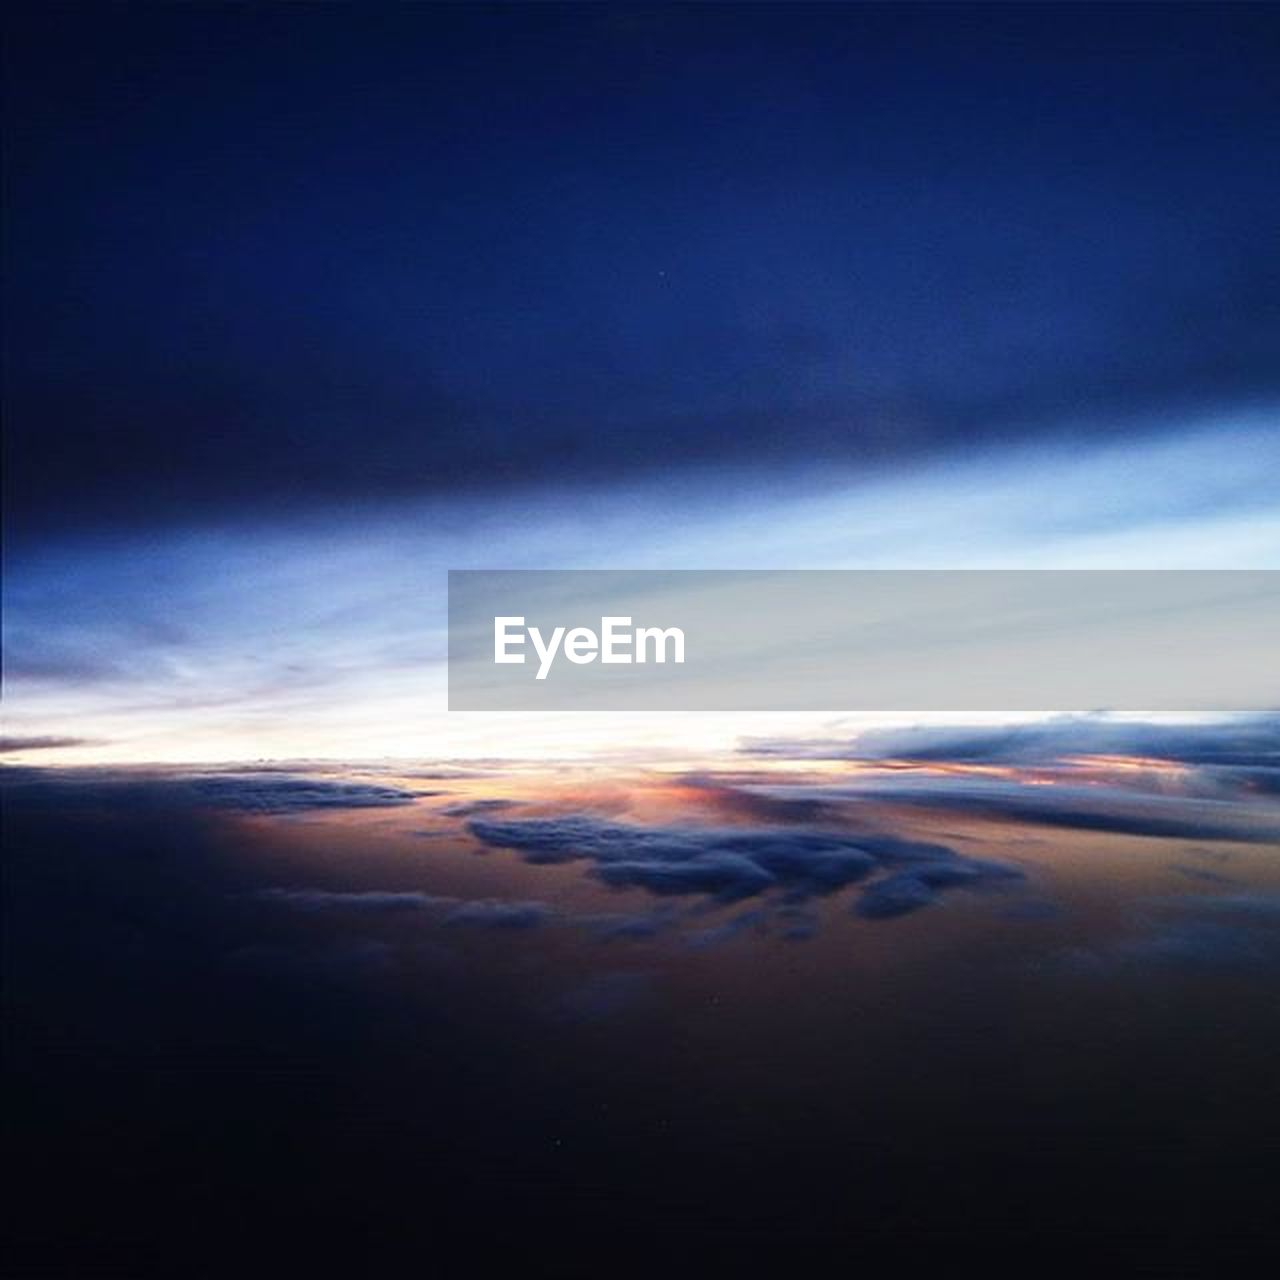 cloud - sky, sky, nature, tranquil scene, dramatic sky, scenics, tranquility, cloudscape, beauty in nature, sunset, sky only, no people, backgrounds, blue, space, ethereal, outdoors, awe, astronomy, planet earth, day, satellite view